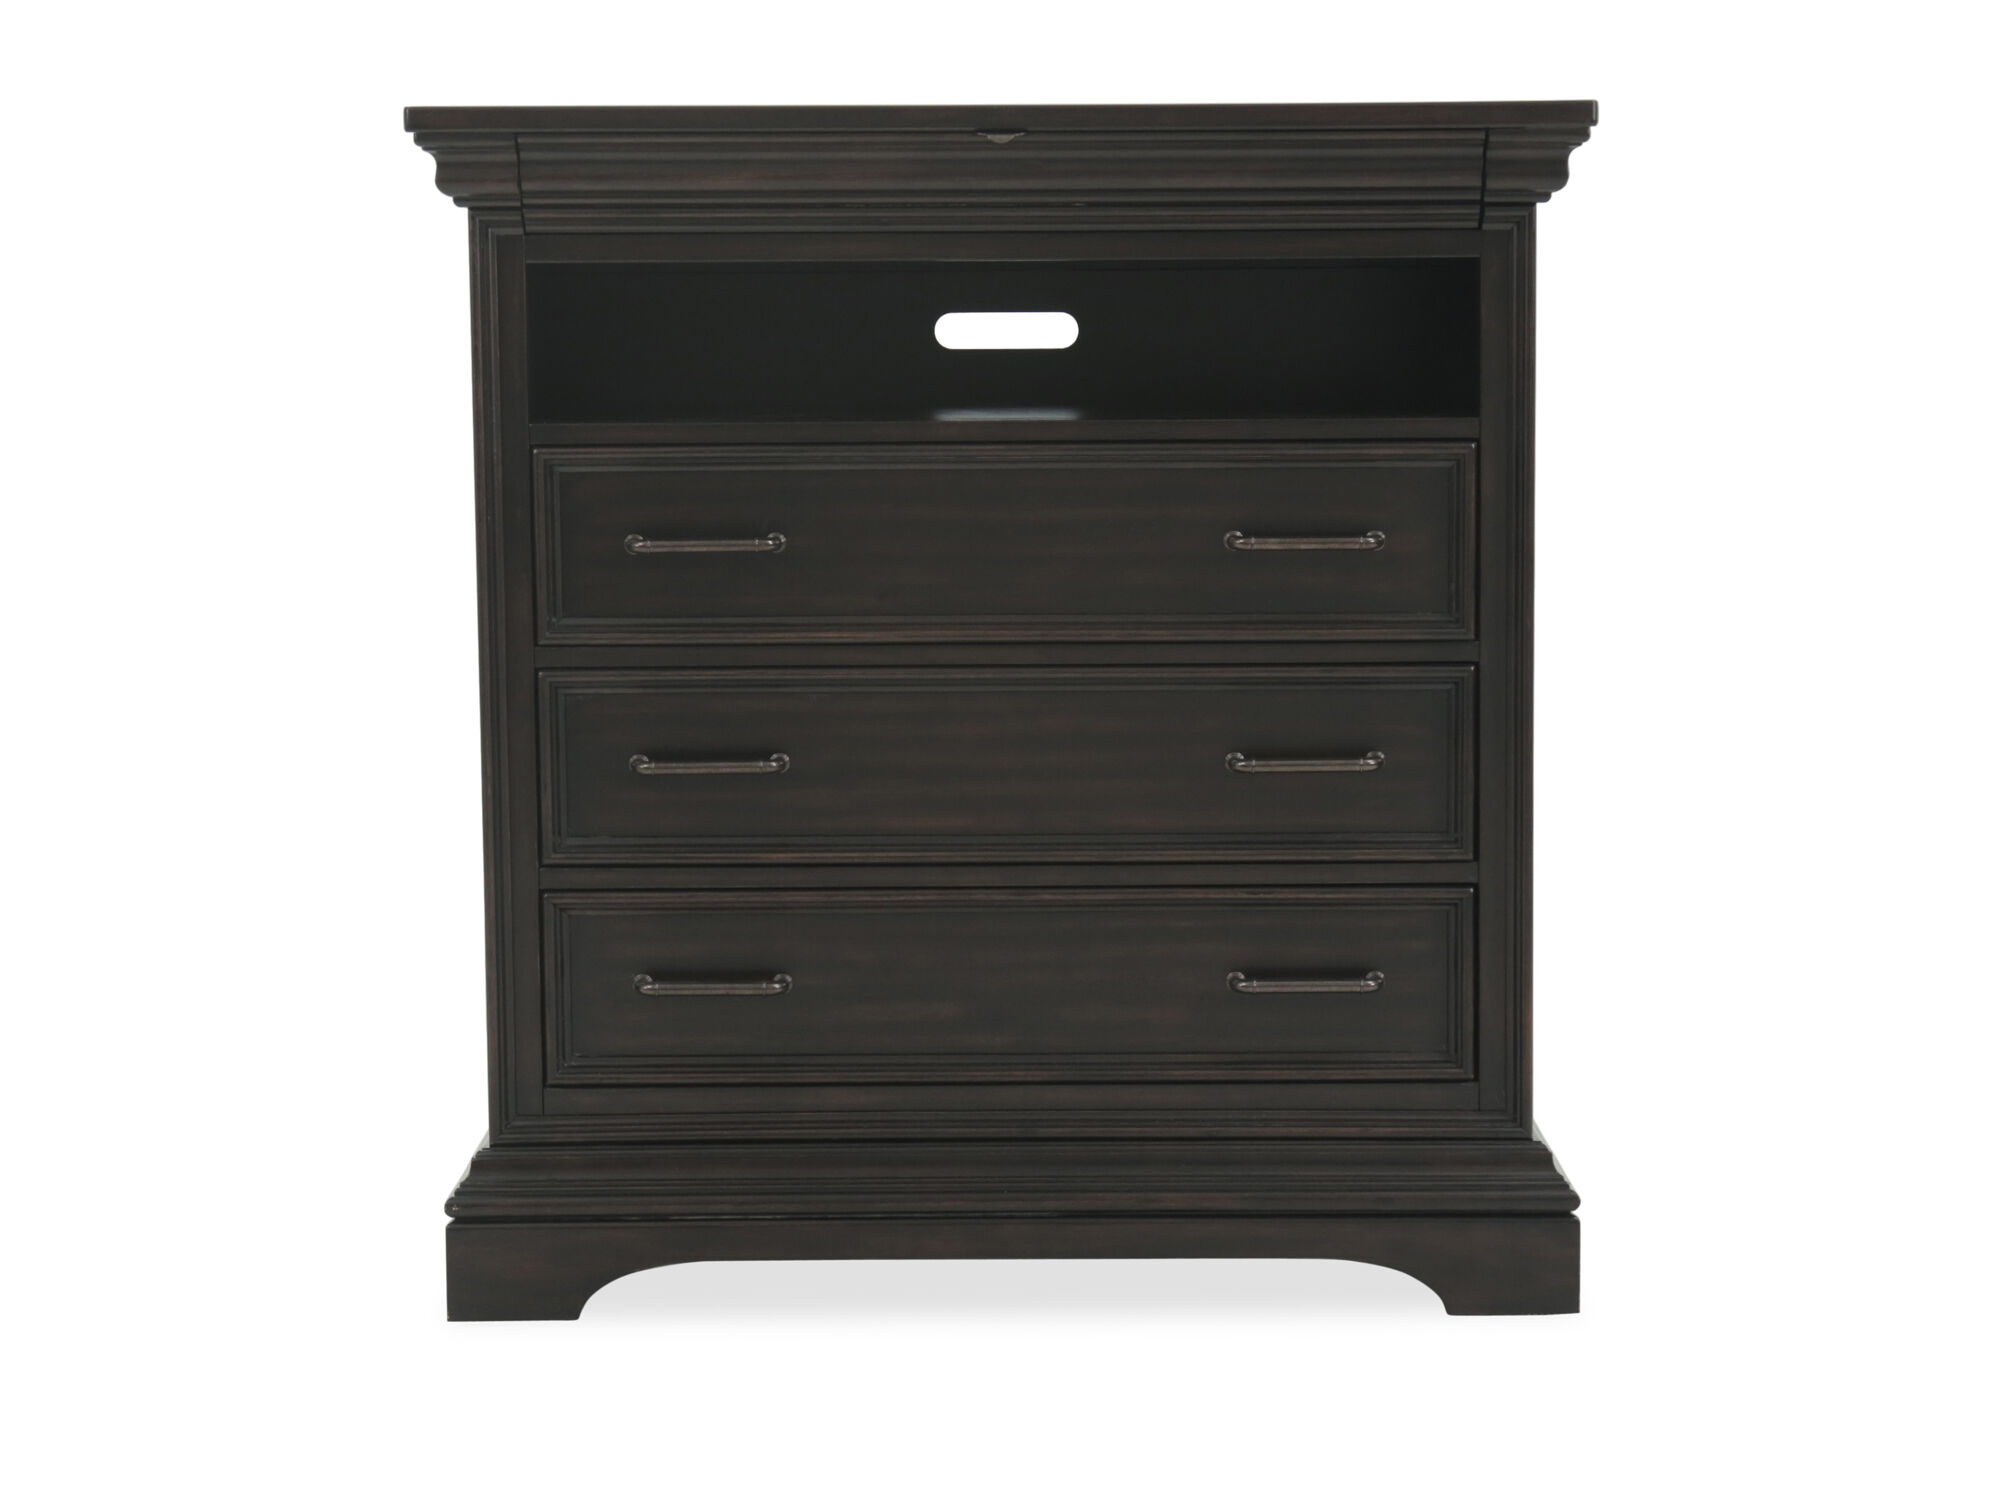 46 Traditional FourDrawer Media Chest in Black  Mathis